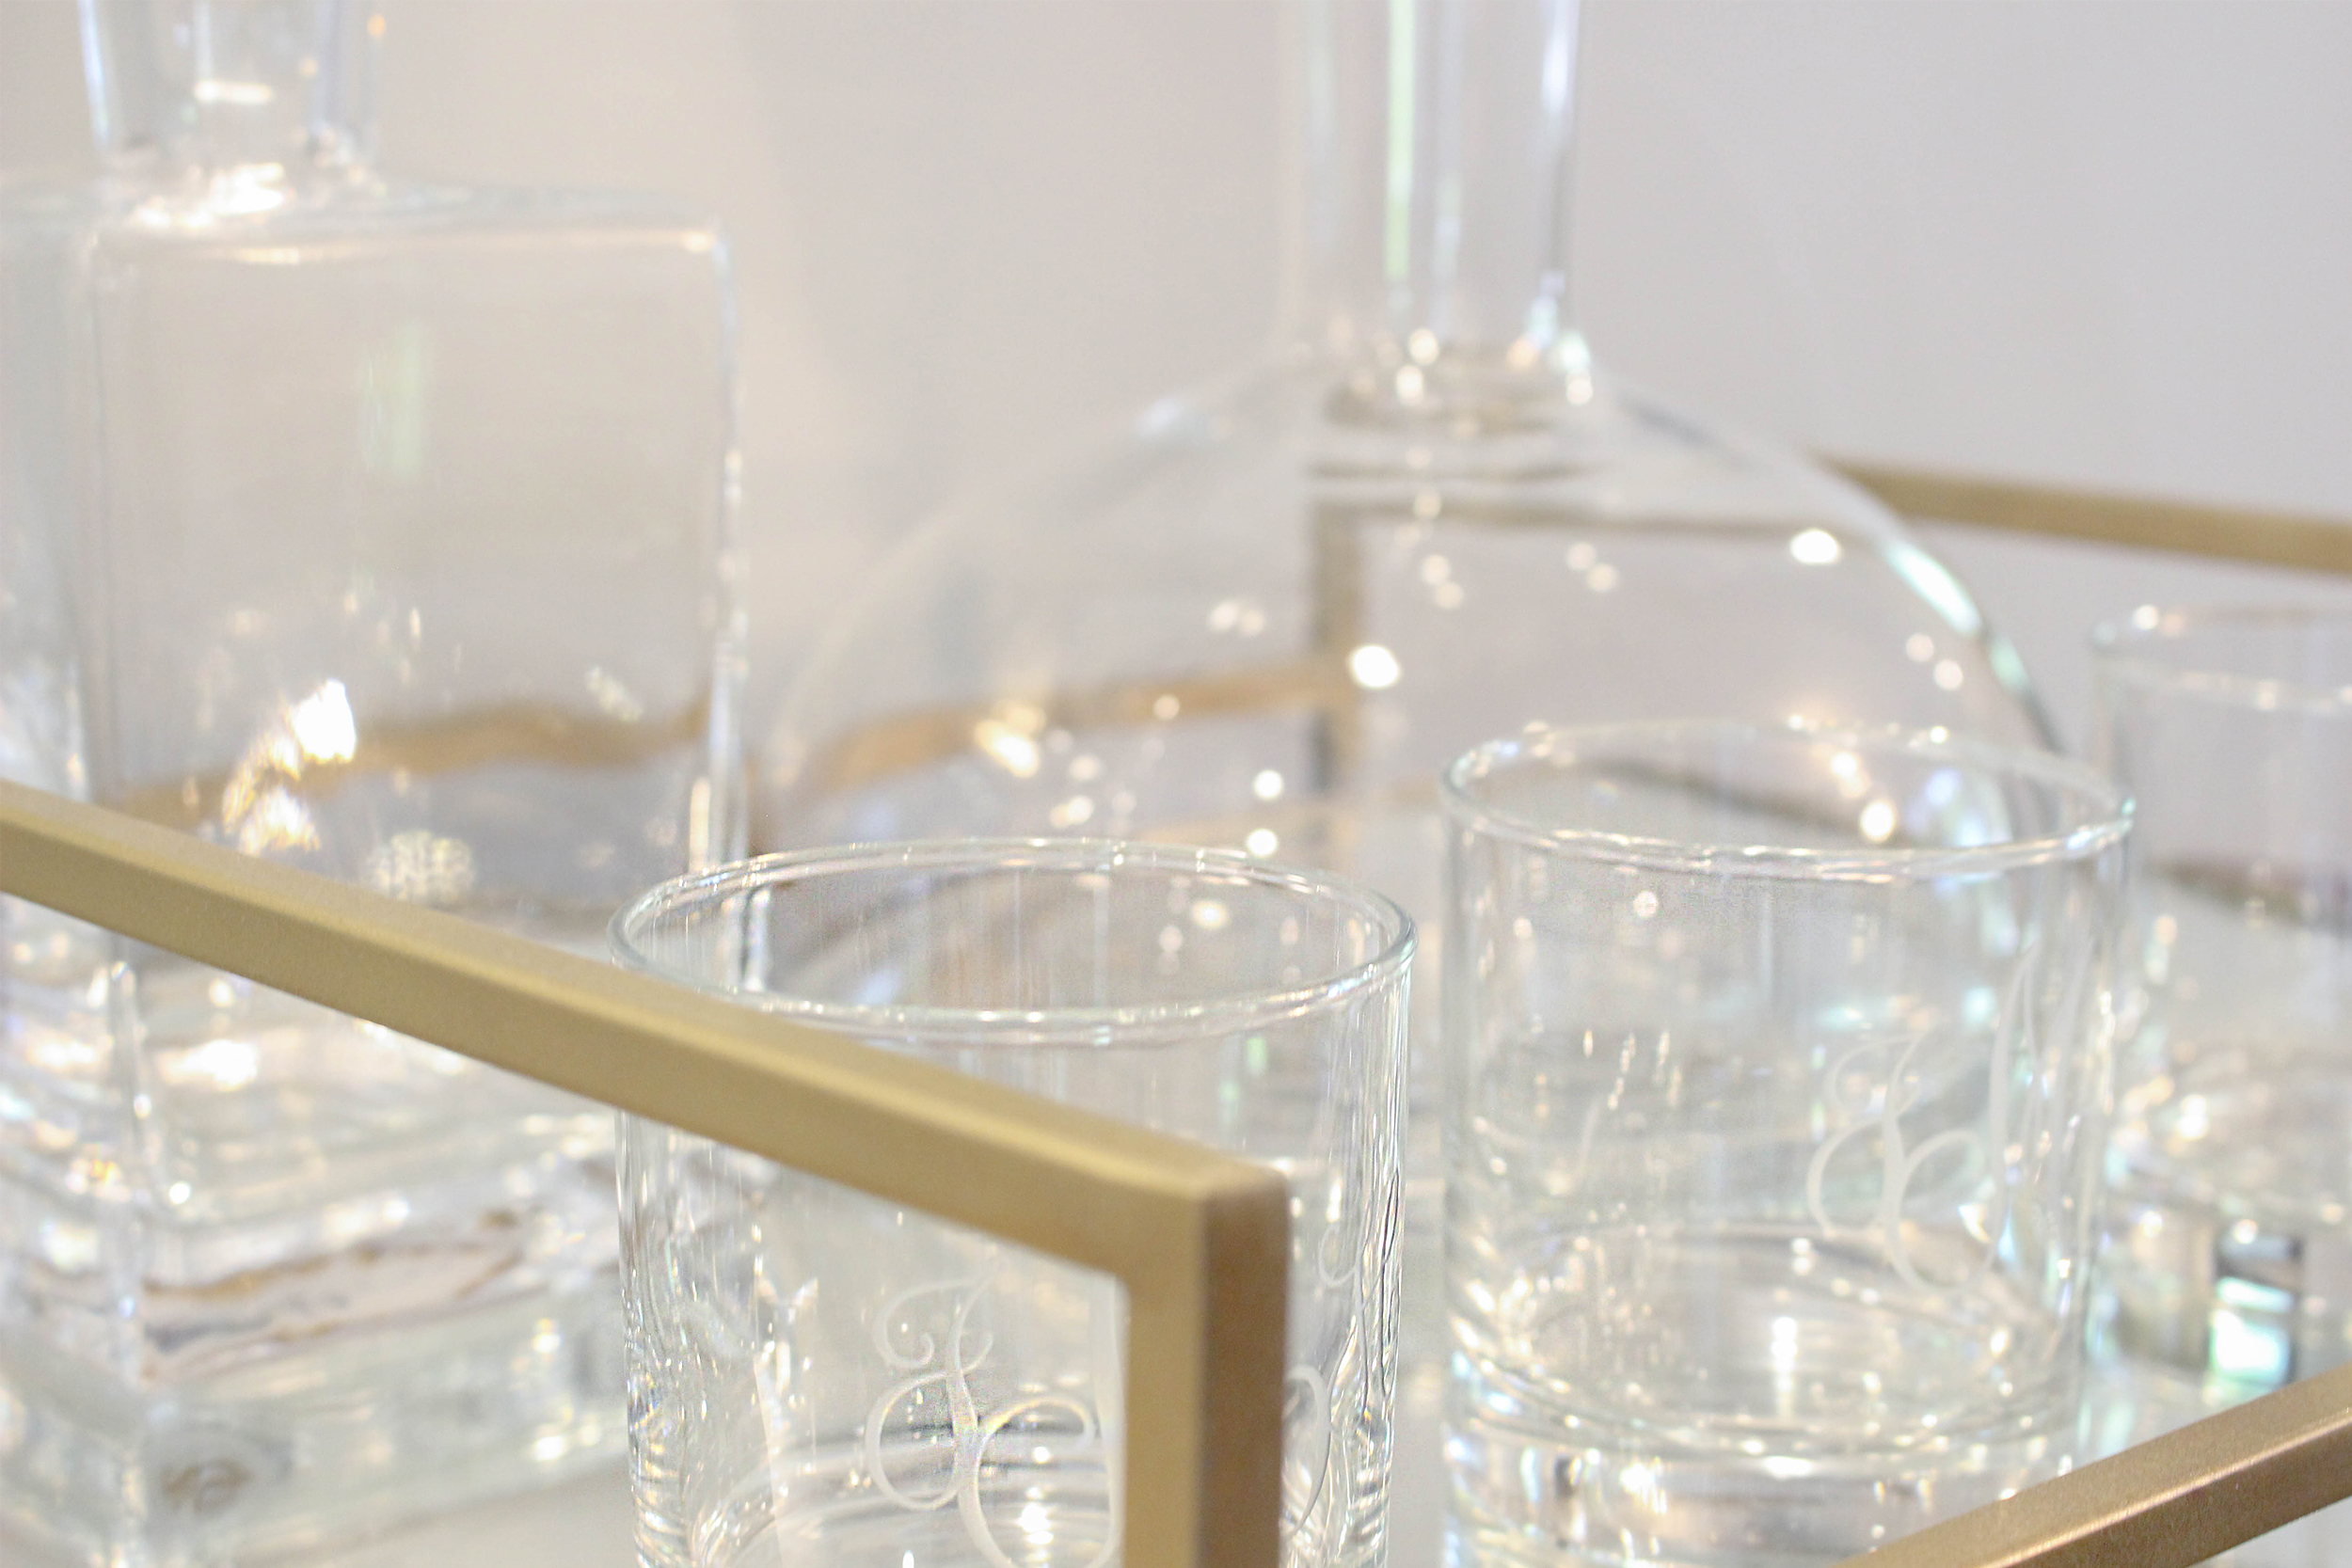 Brass bar tray detail. We used the client's own decanters and monogrammed highball glasses.